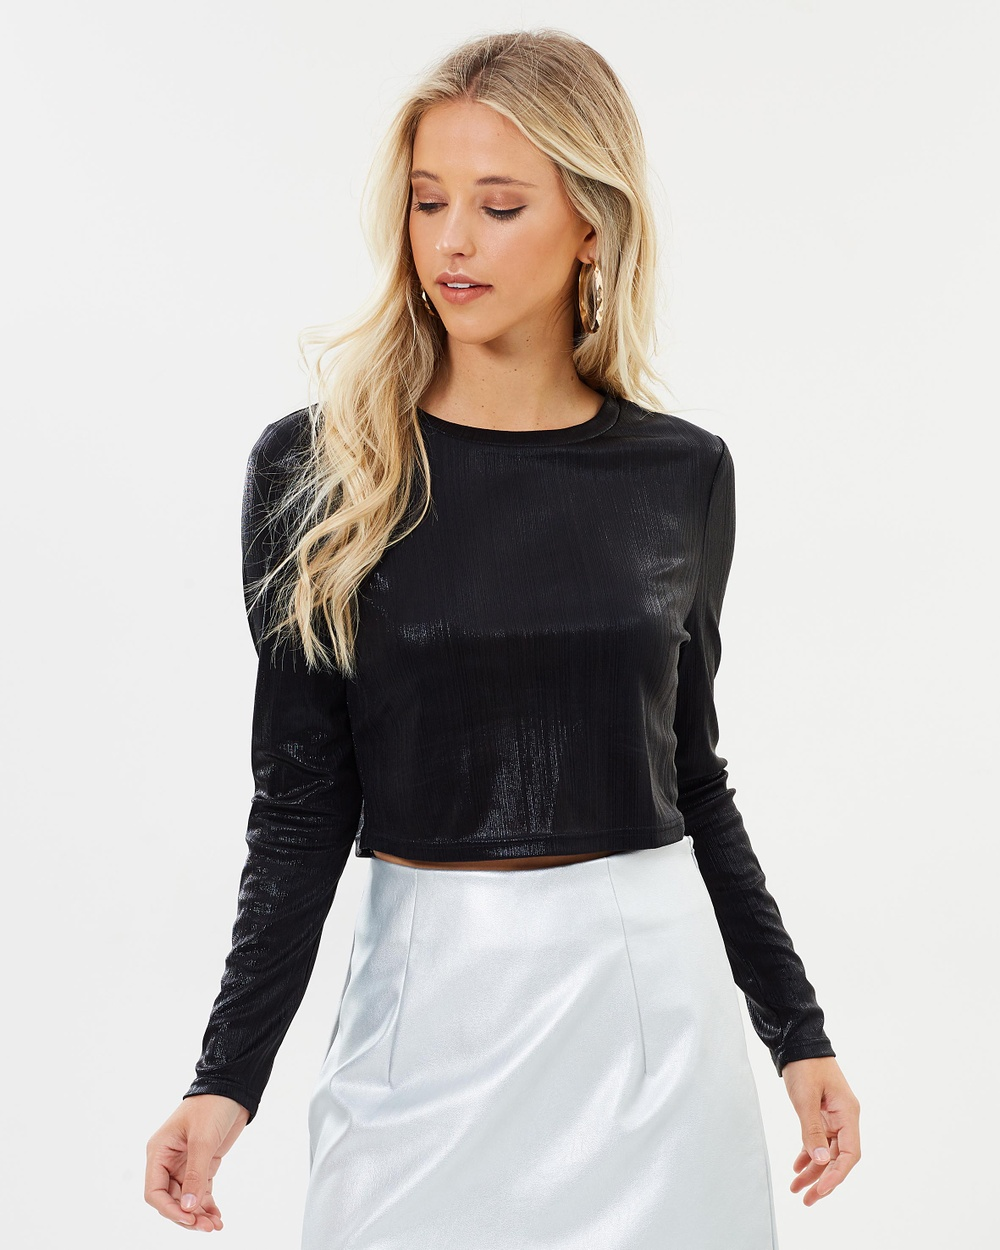 Dazie Tabia Fitted Knit Top Cropped tops Metallic Black Tabia Fitted Knit Top